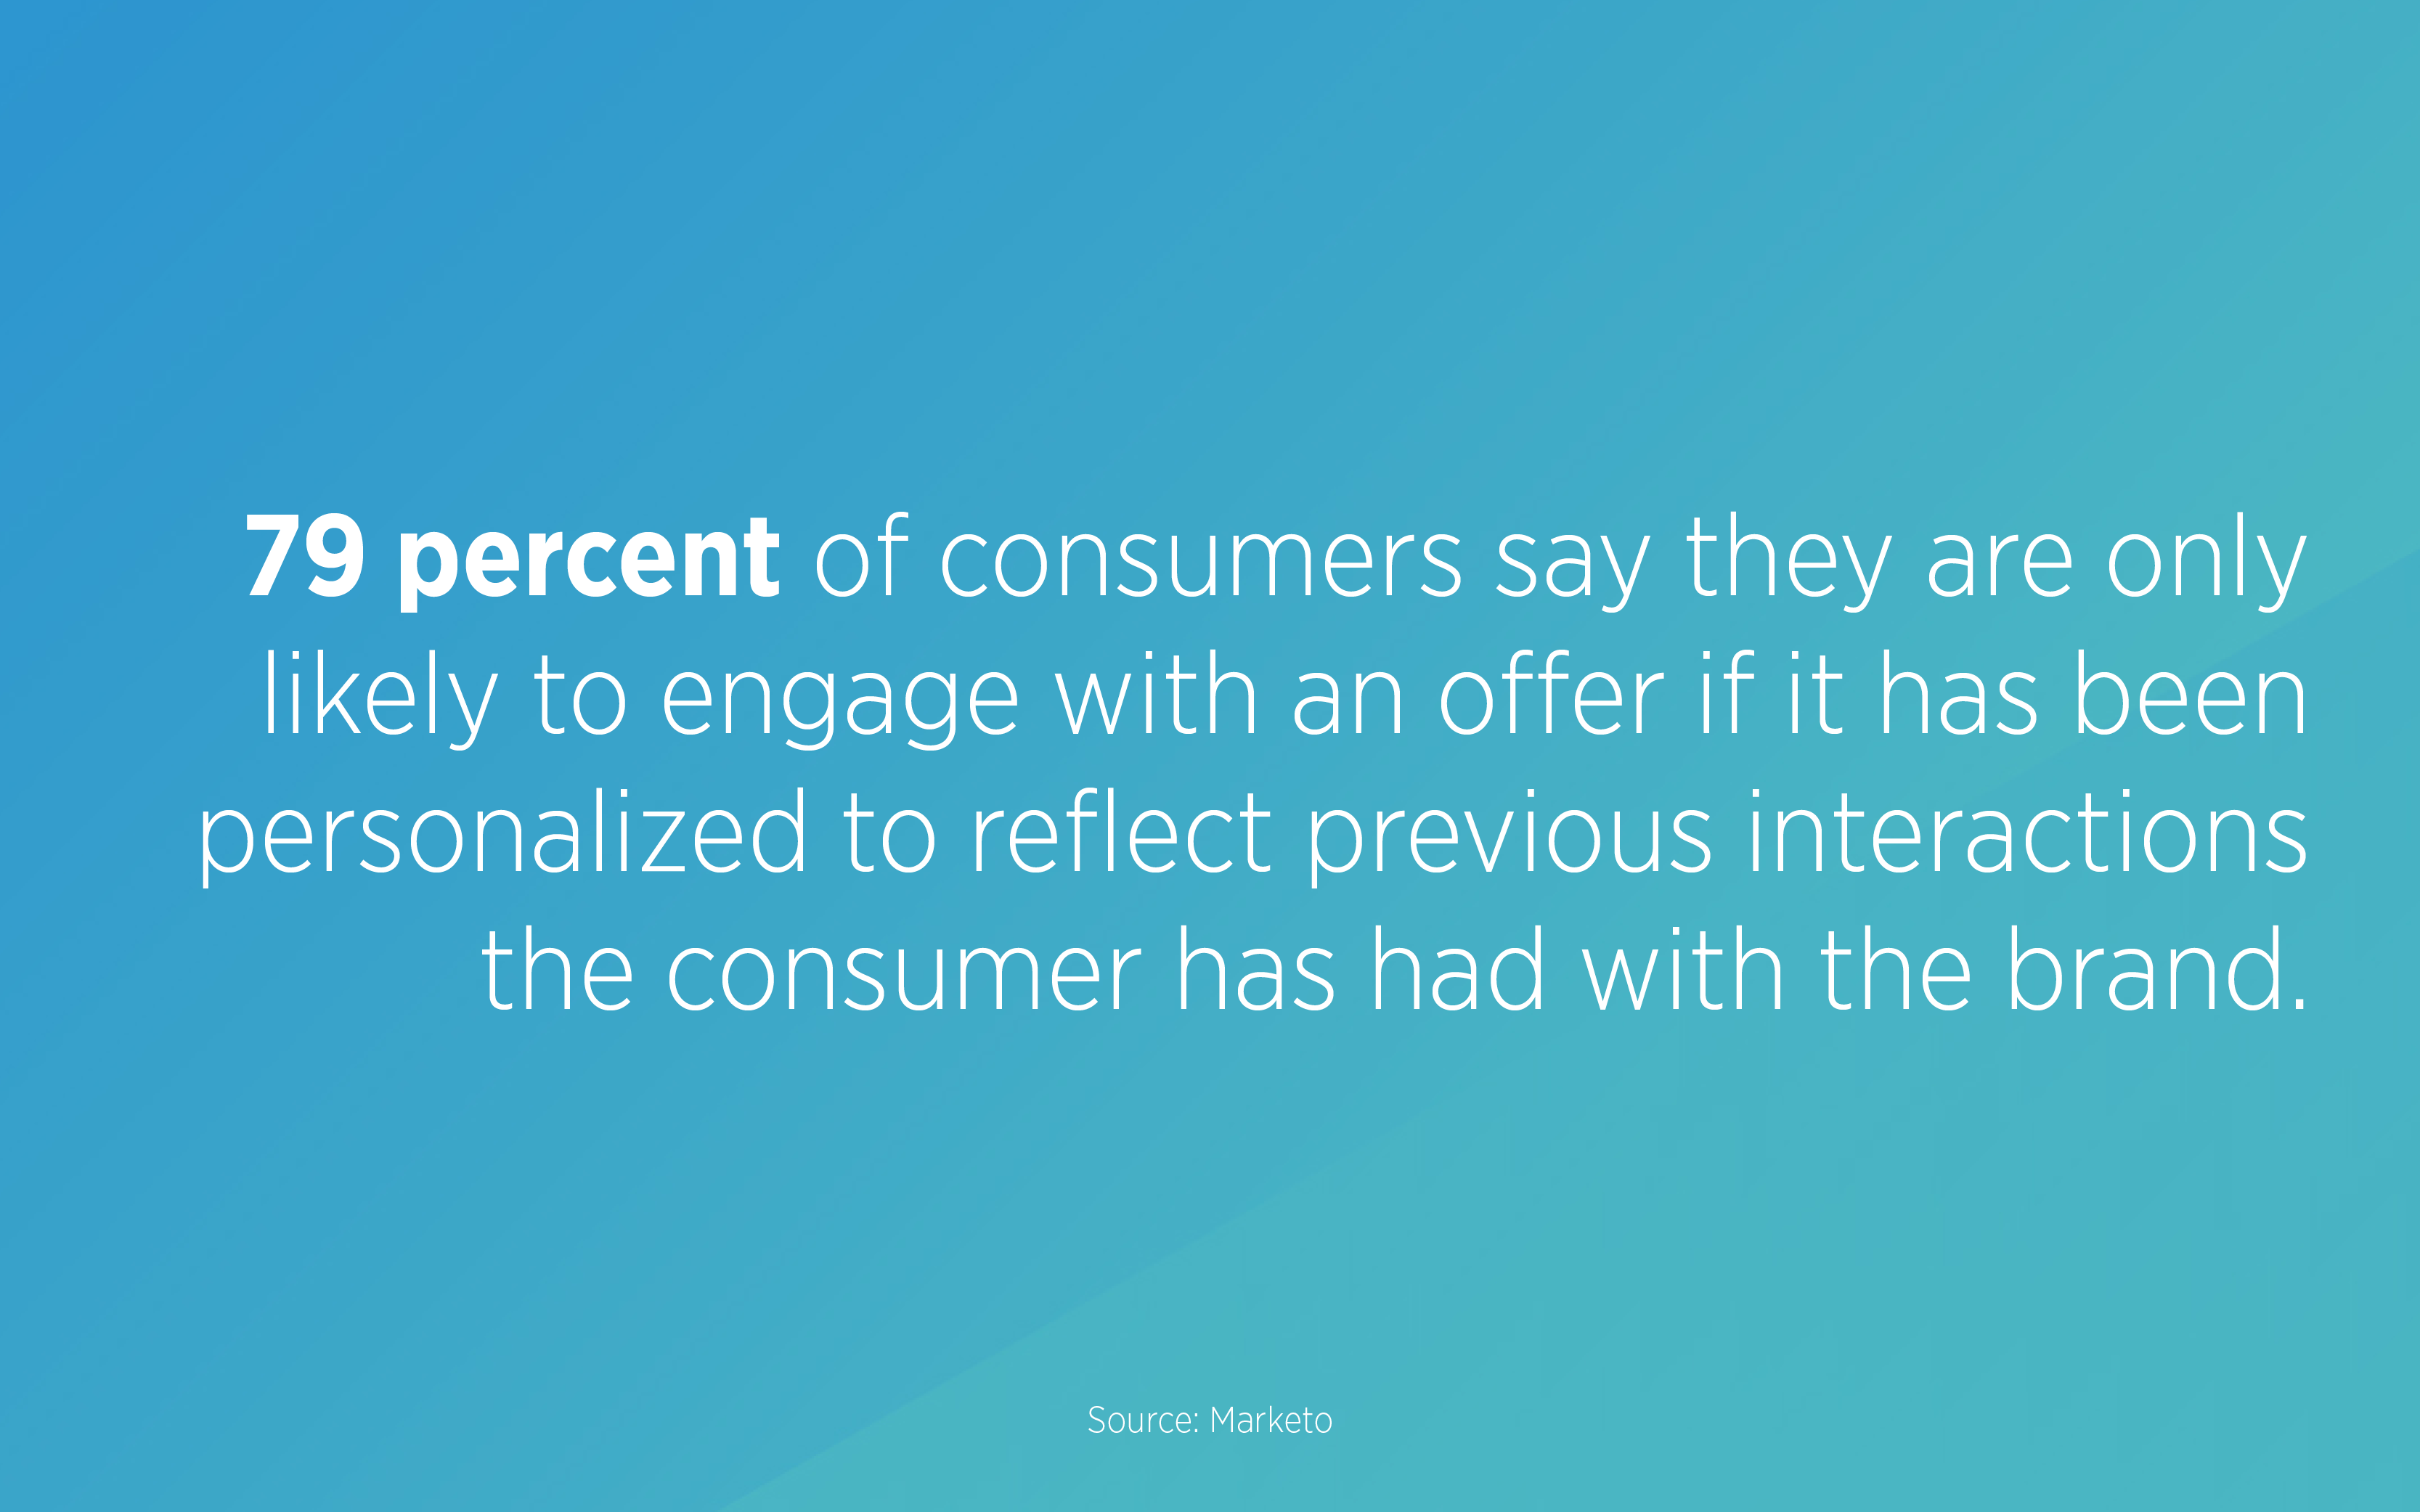 79% of consumers say they are only likely to engage with an offer if it has been personalized to reflect previous interactions the consumer has had with the brand. This is why personalizing messages is so important.